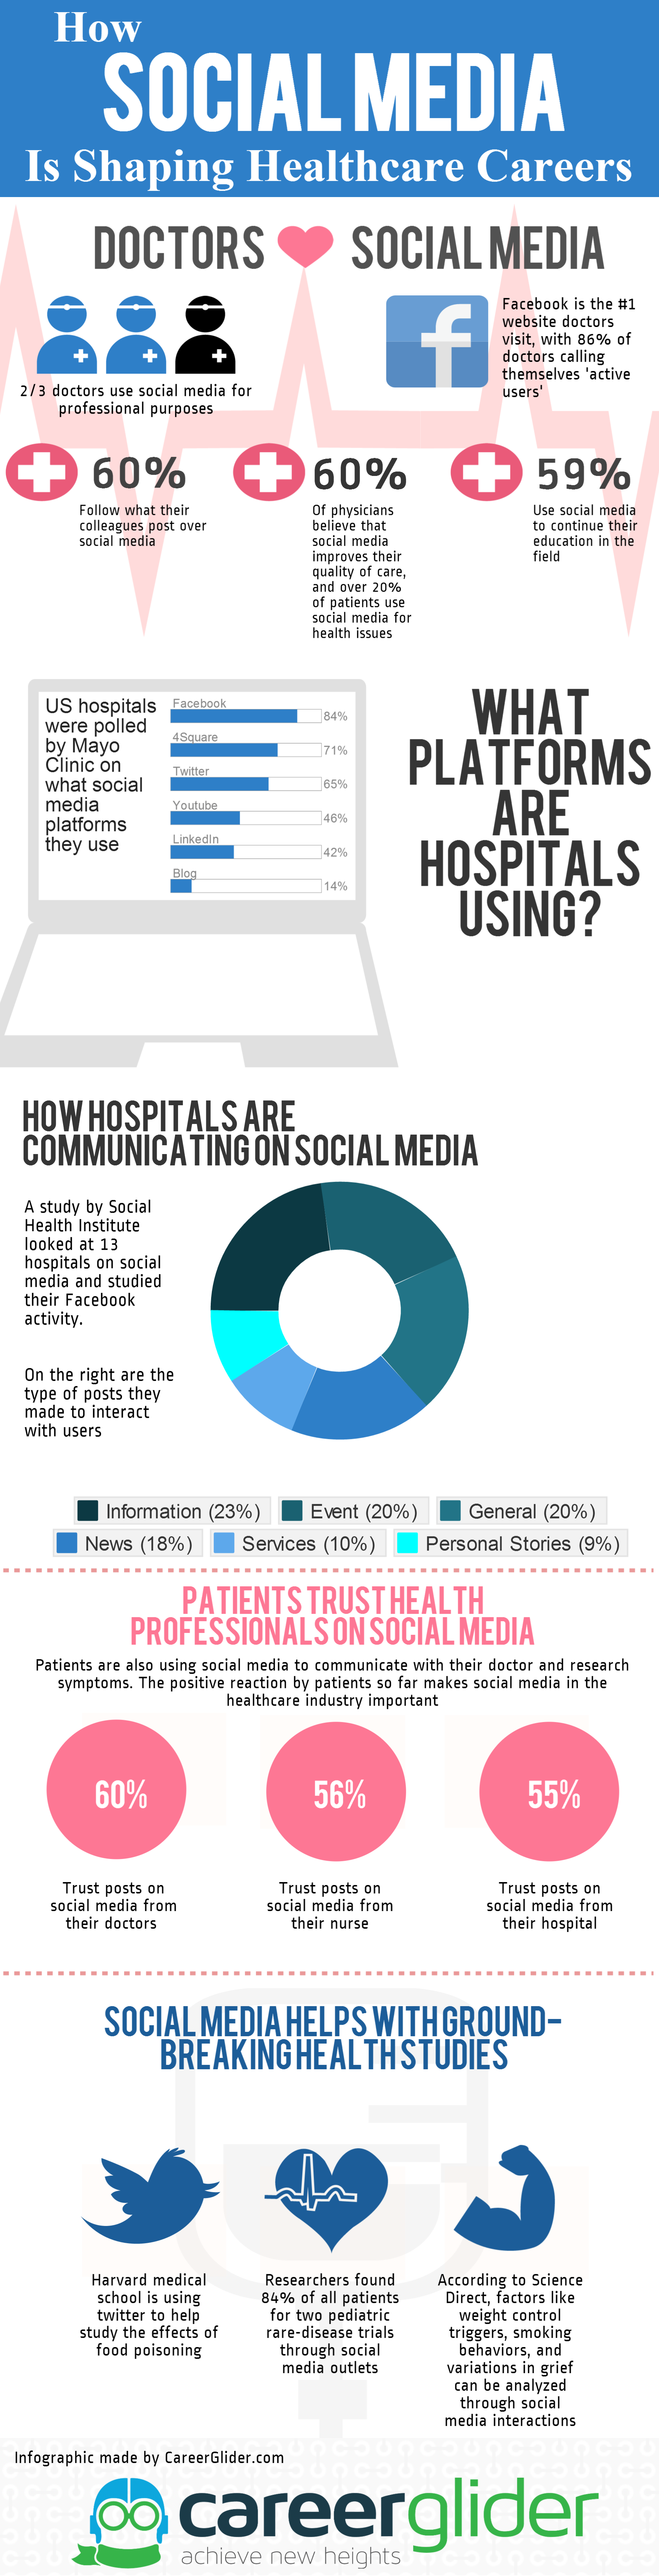 How Social Media is Shaping the Health Industry